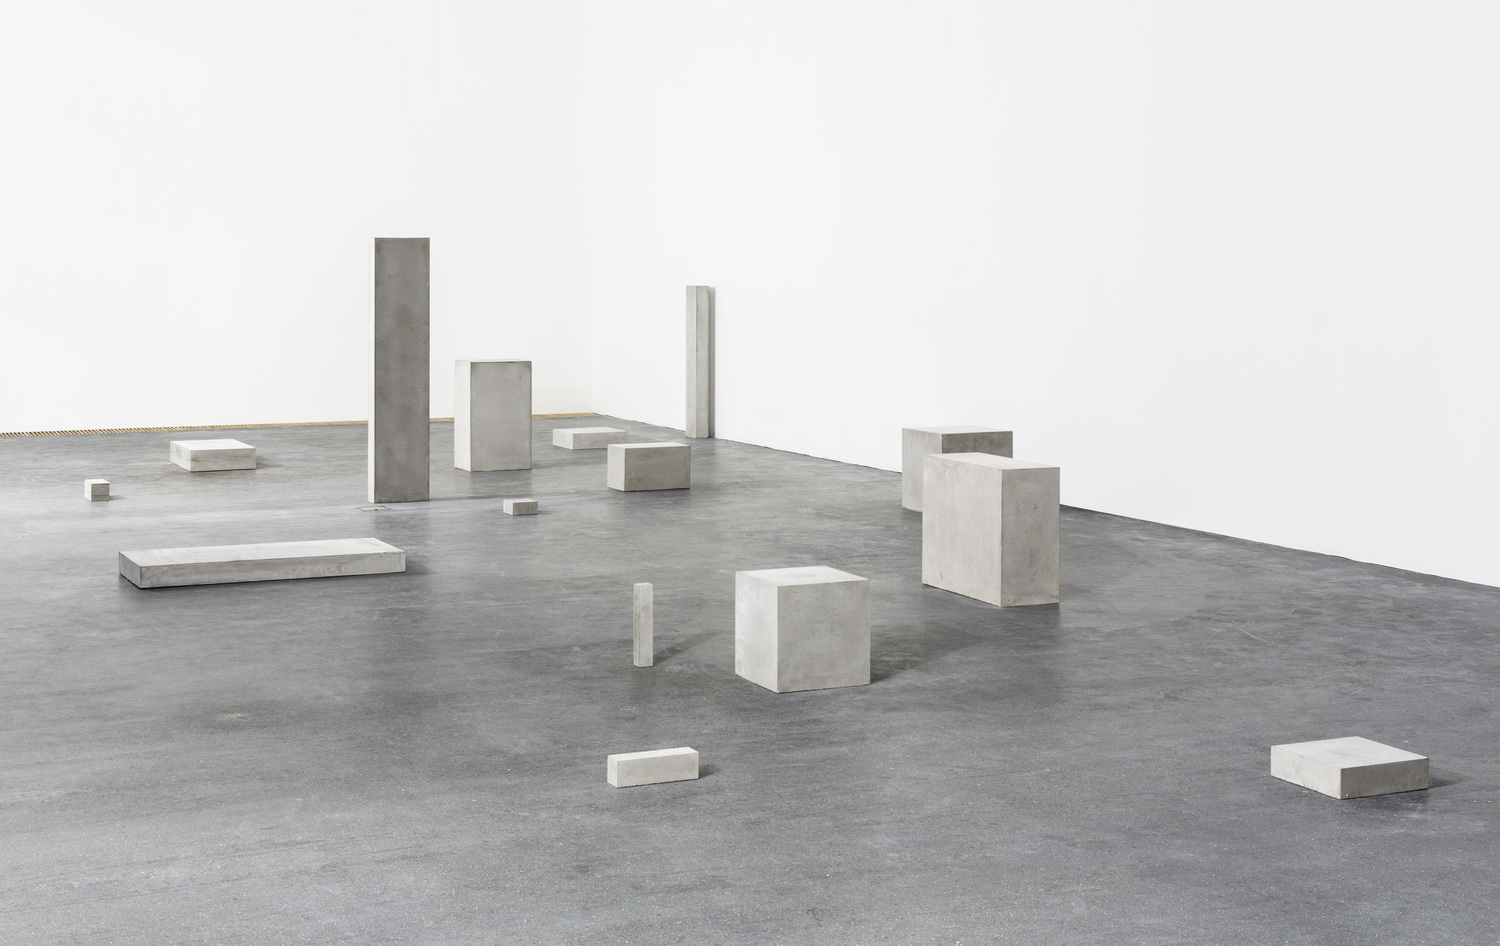 From the exhibition Im-materiality no. 3 (consciousness), Sorø Art Museum, DK2014.  A collaboration between Ebbe Stub Wittrup and Karl Troels Sandegård